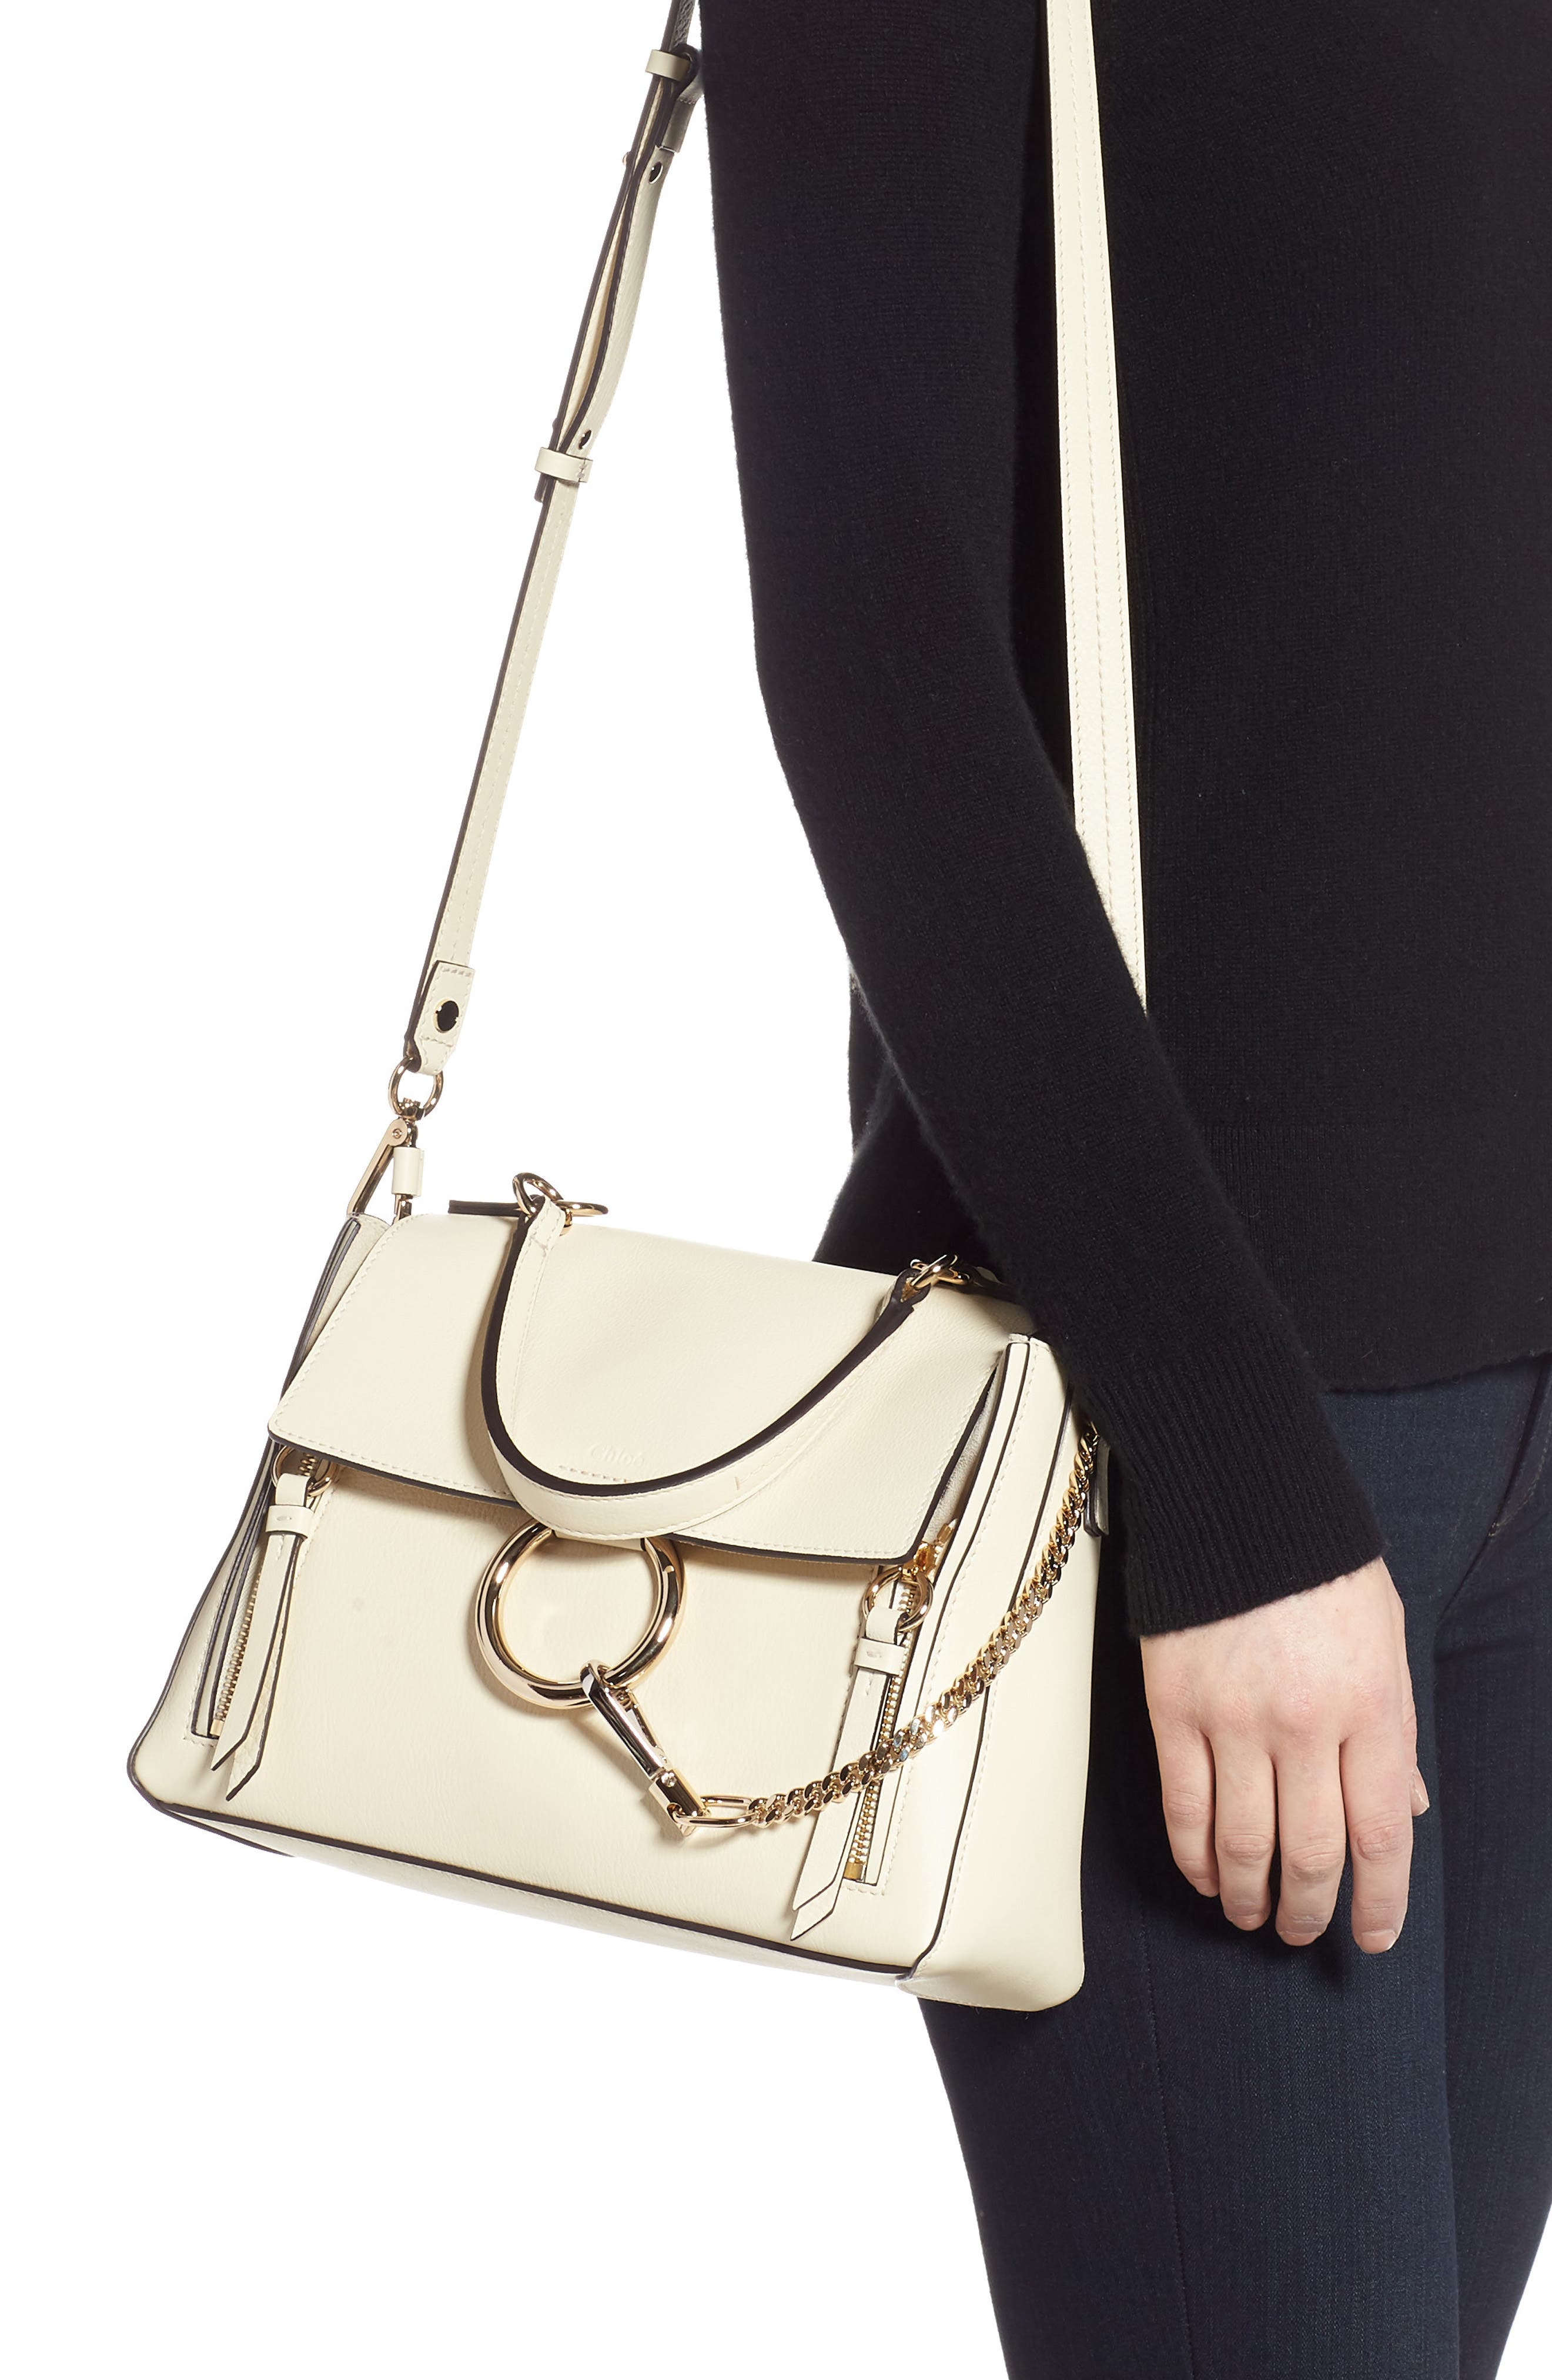 CHLOÉ, Small Faye Day Leather Shoulder Bag, Alternate thumbnail 2, color, OFF WHITE